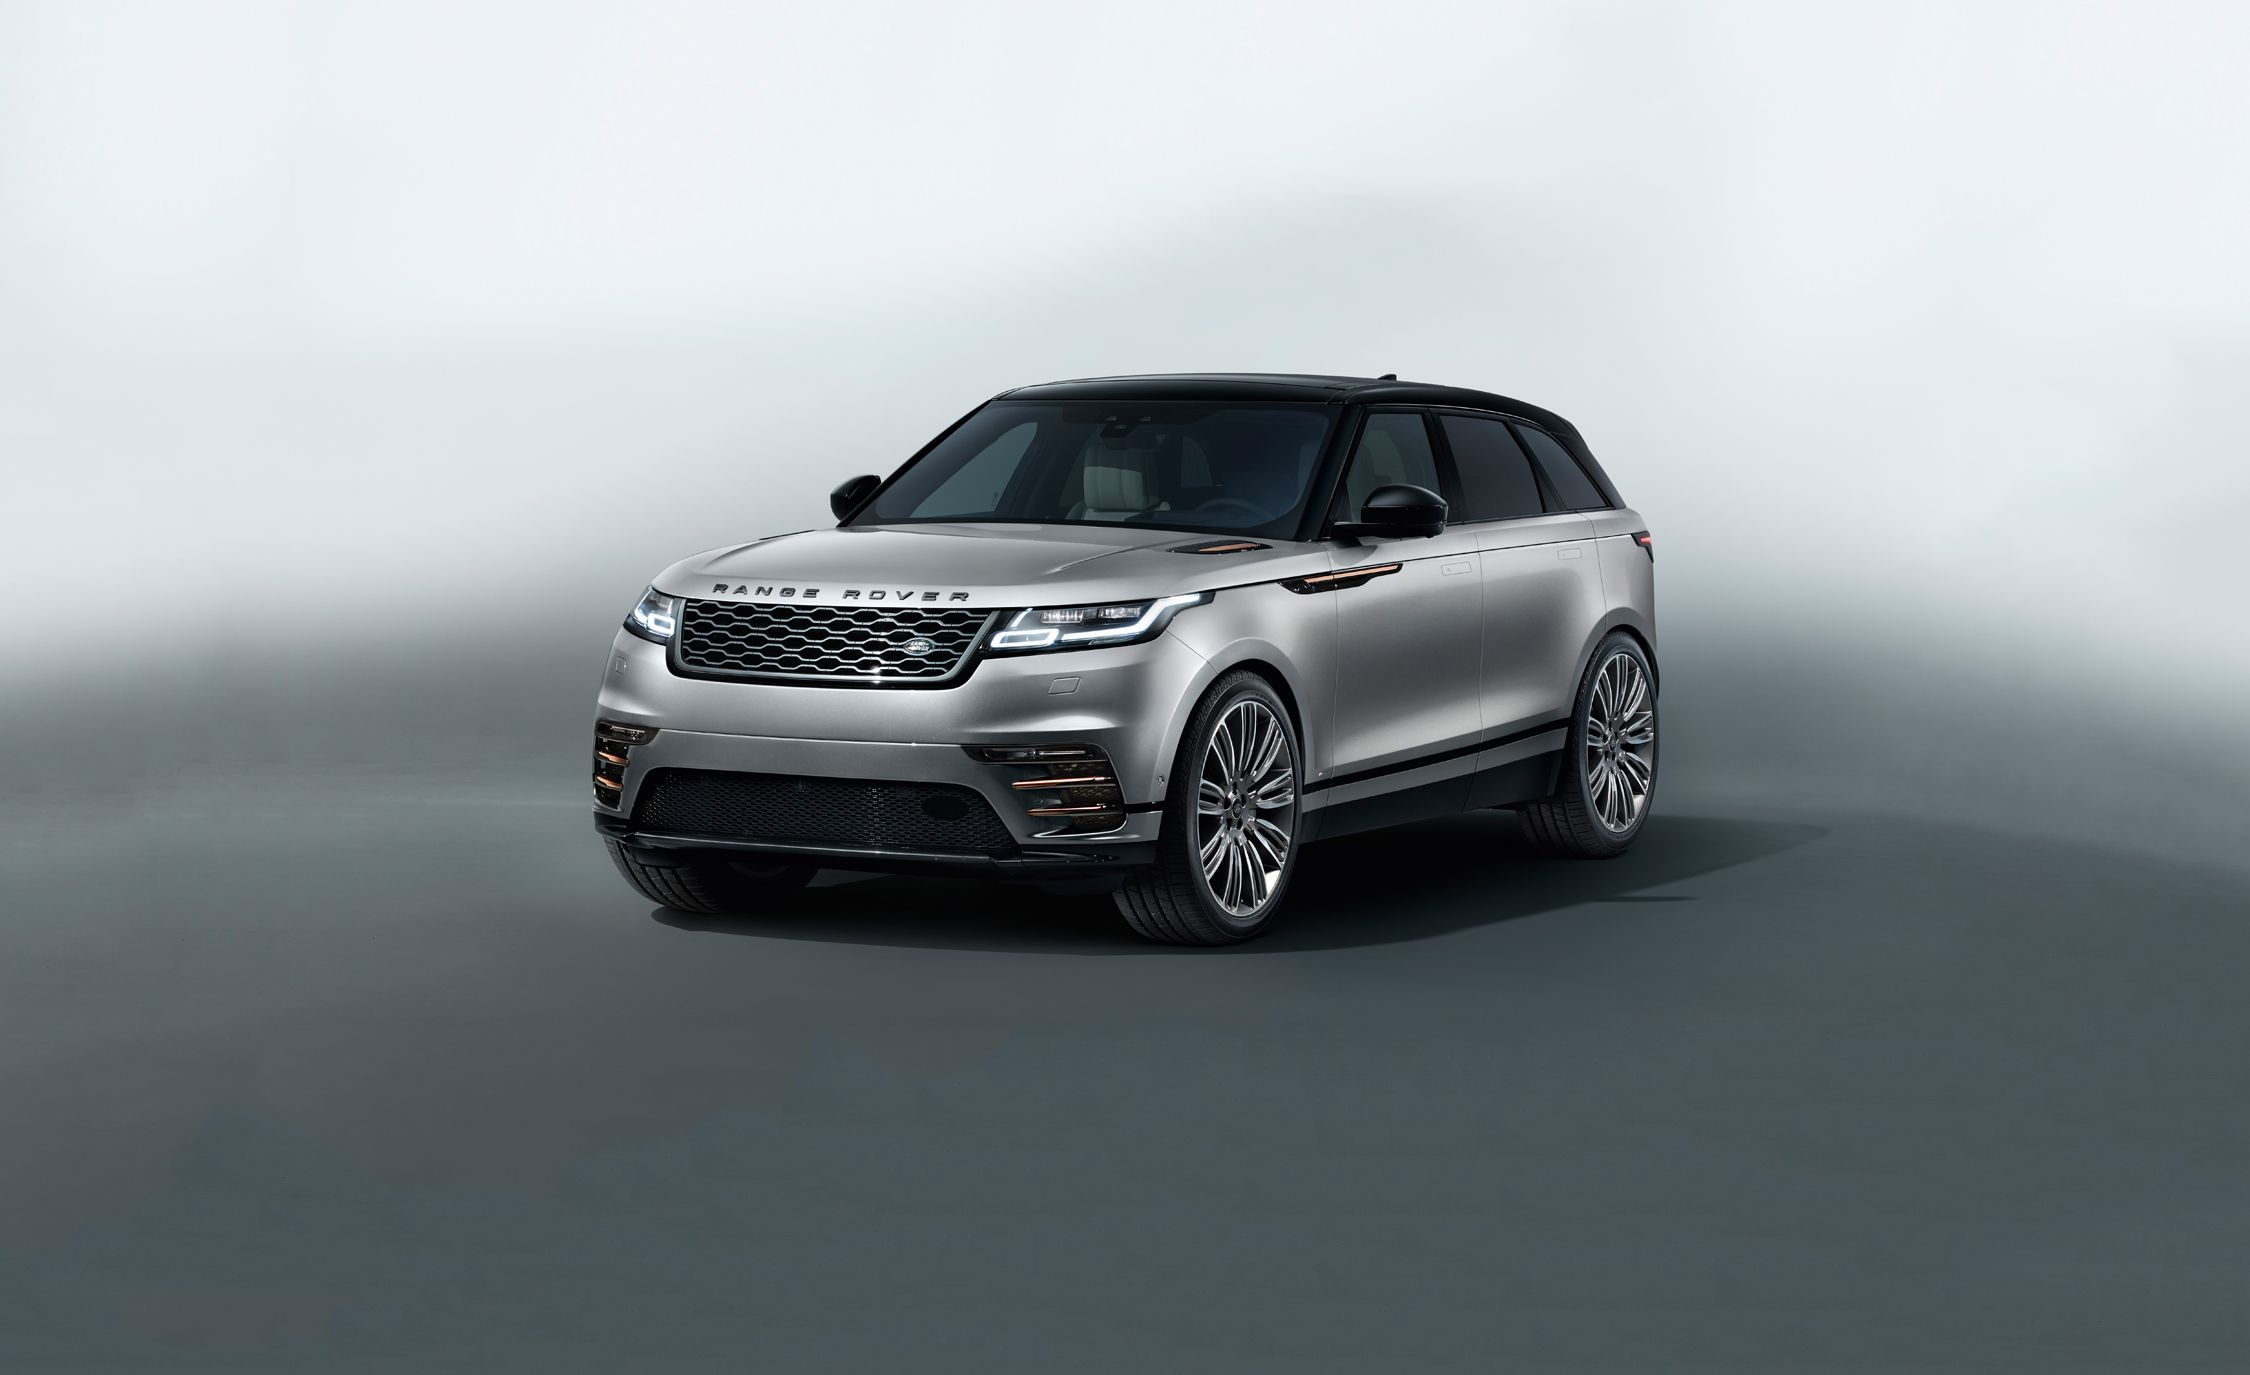 2020 land rover range rover velar reviews | land rover range rover